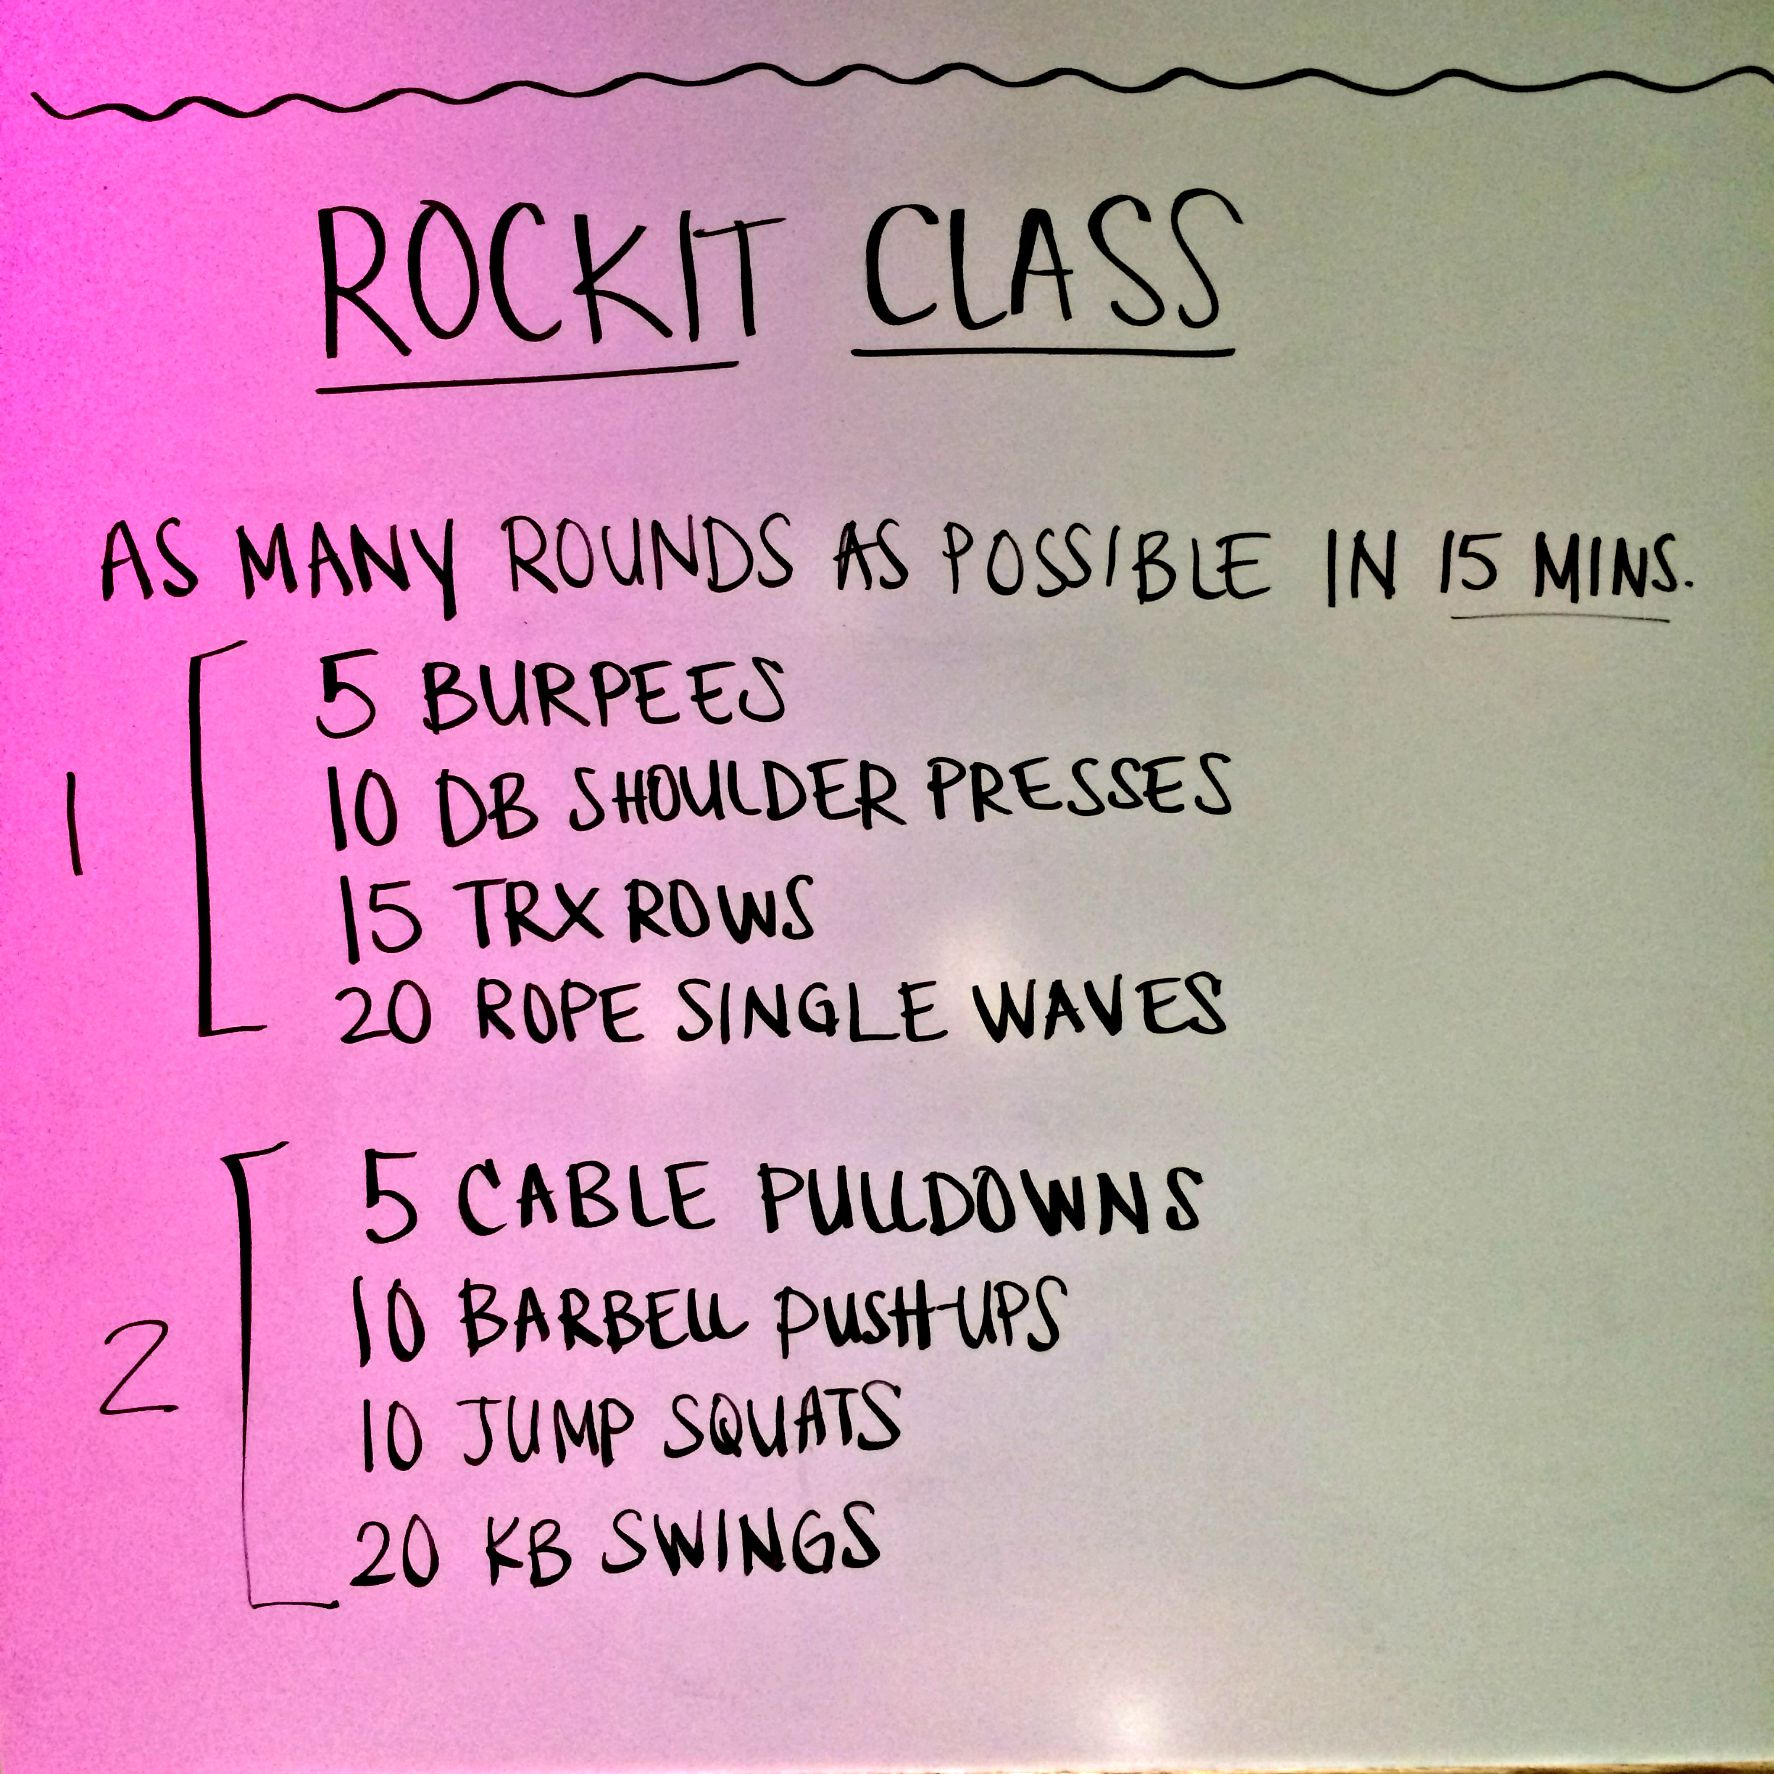 rock city fitness rockit workout